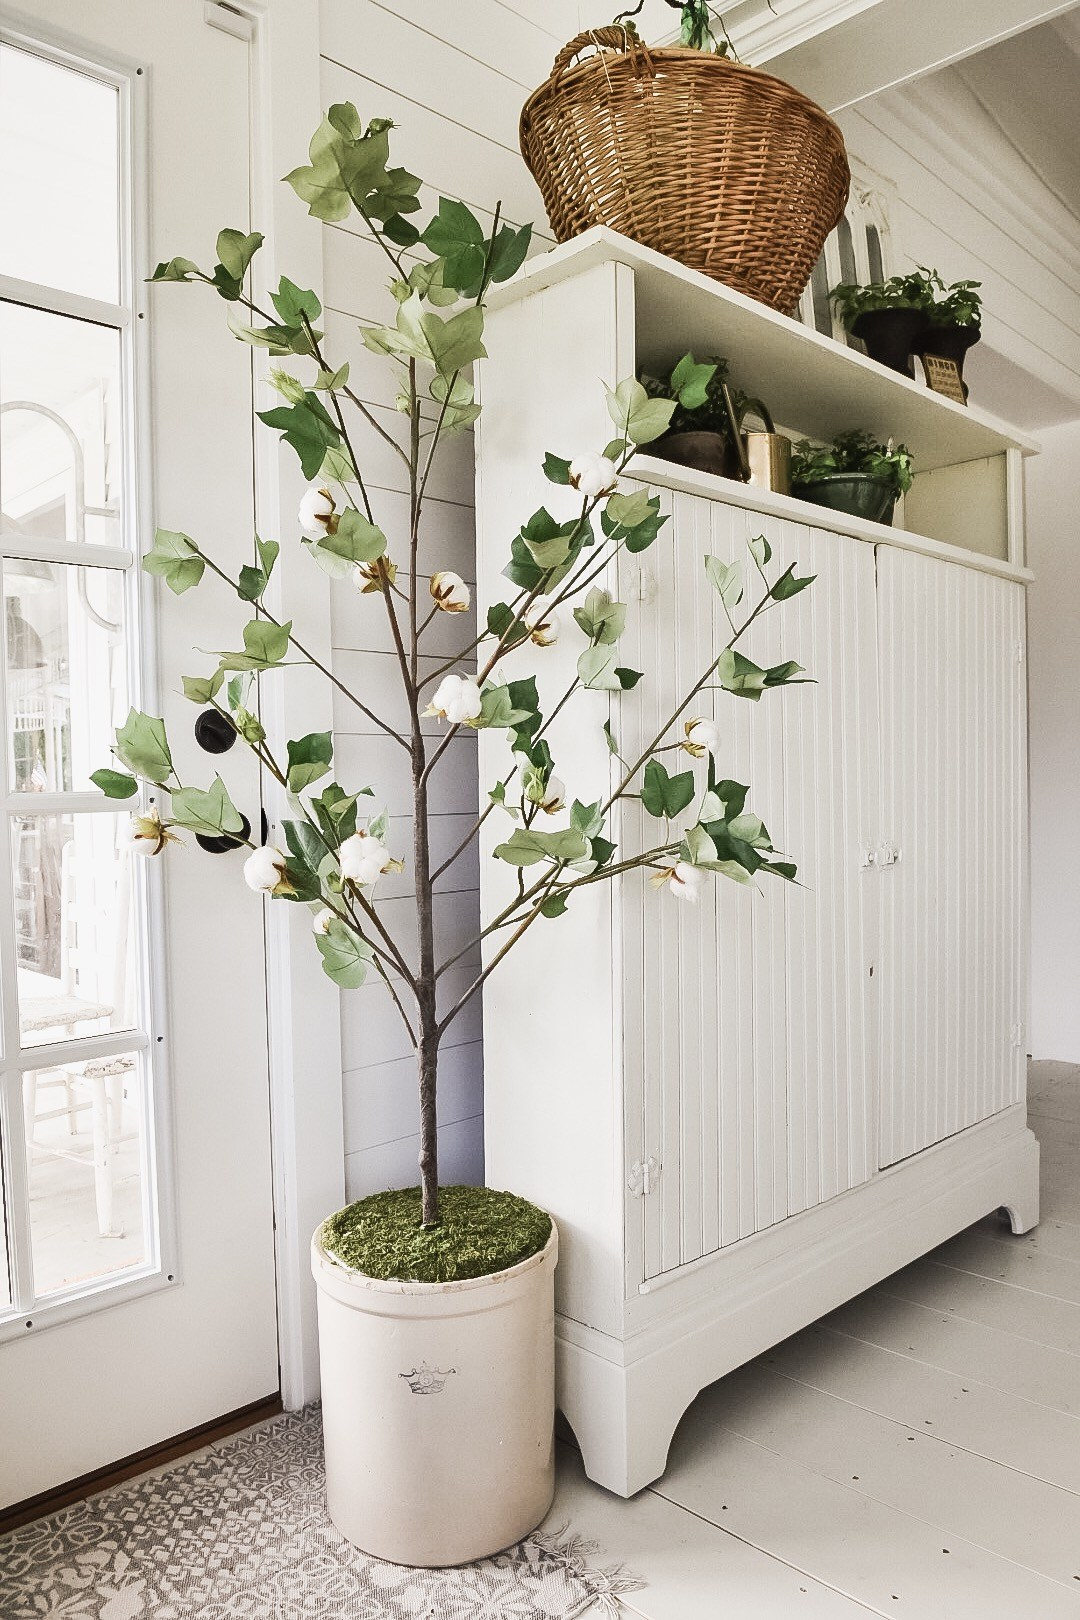 faux potted plants are a simple farmhouse style diy that adds freshness to any room